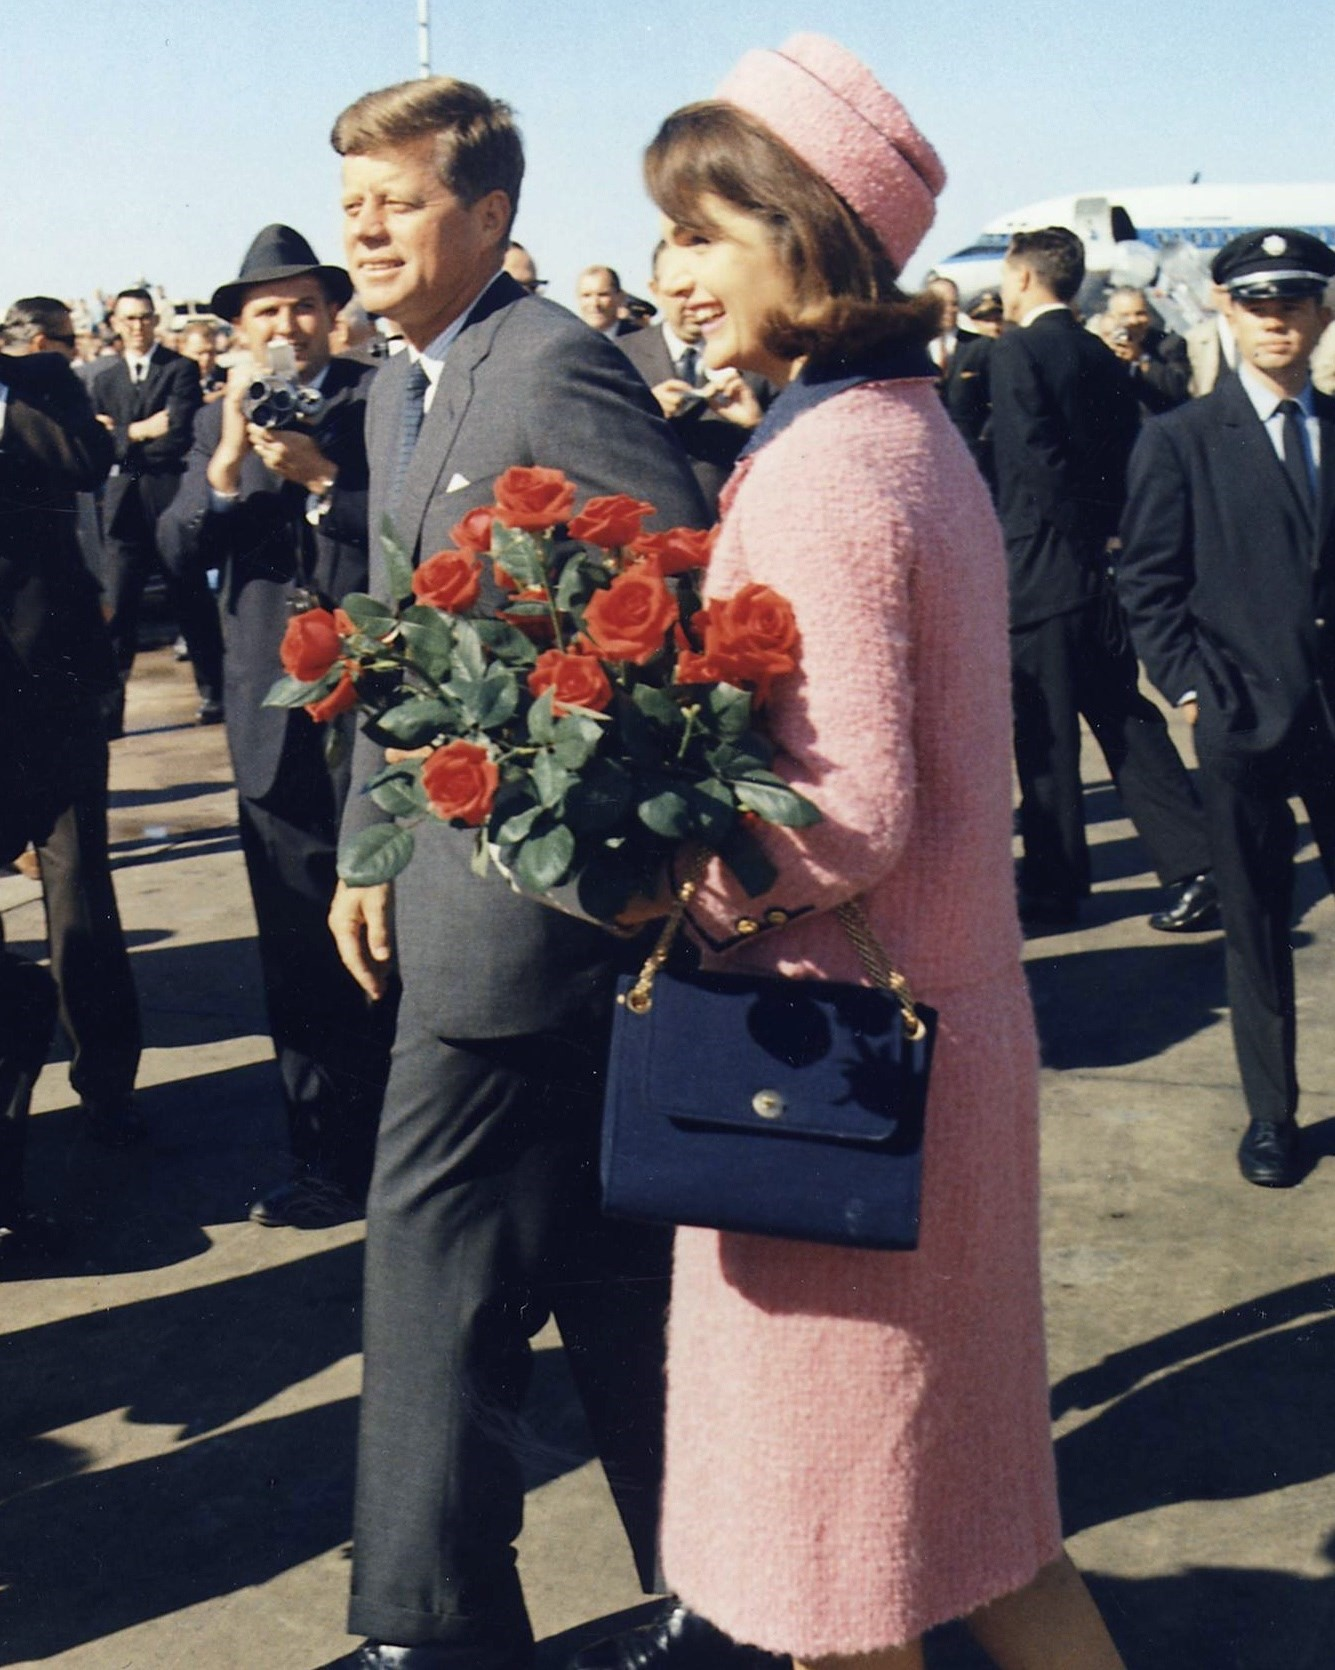 JACKIE O Kennedys_arrive_at_Dallas_11-22-63_(Cropp